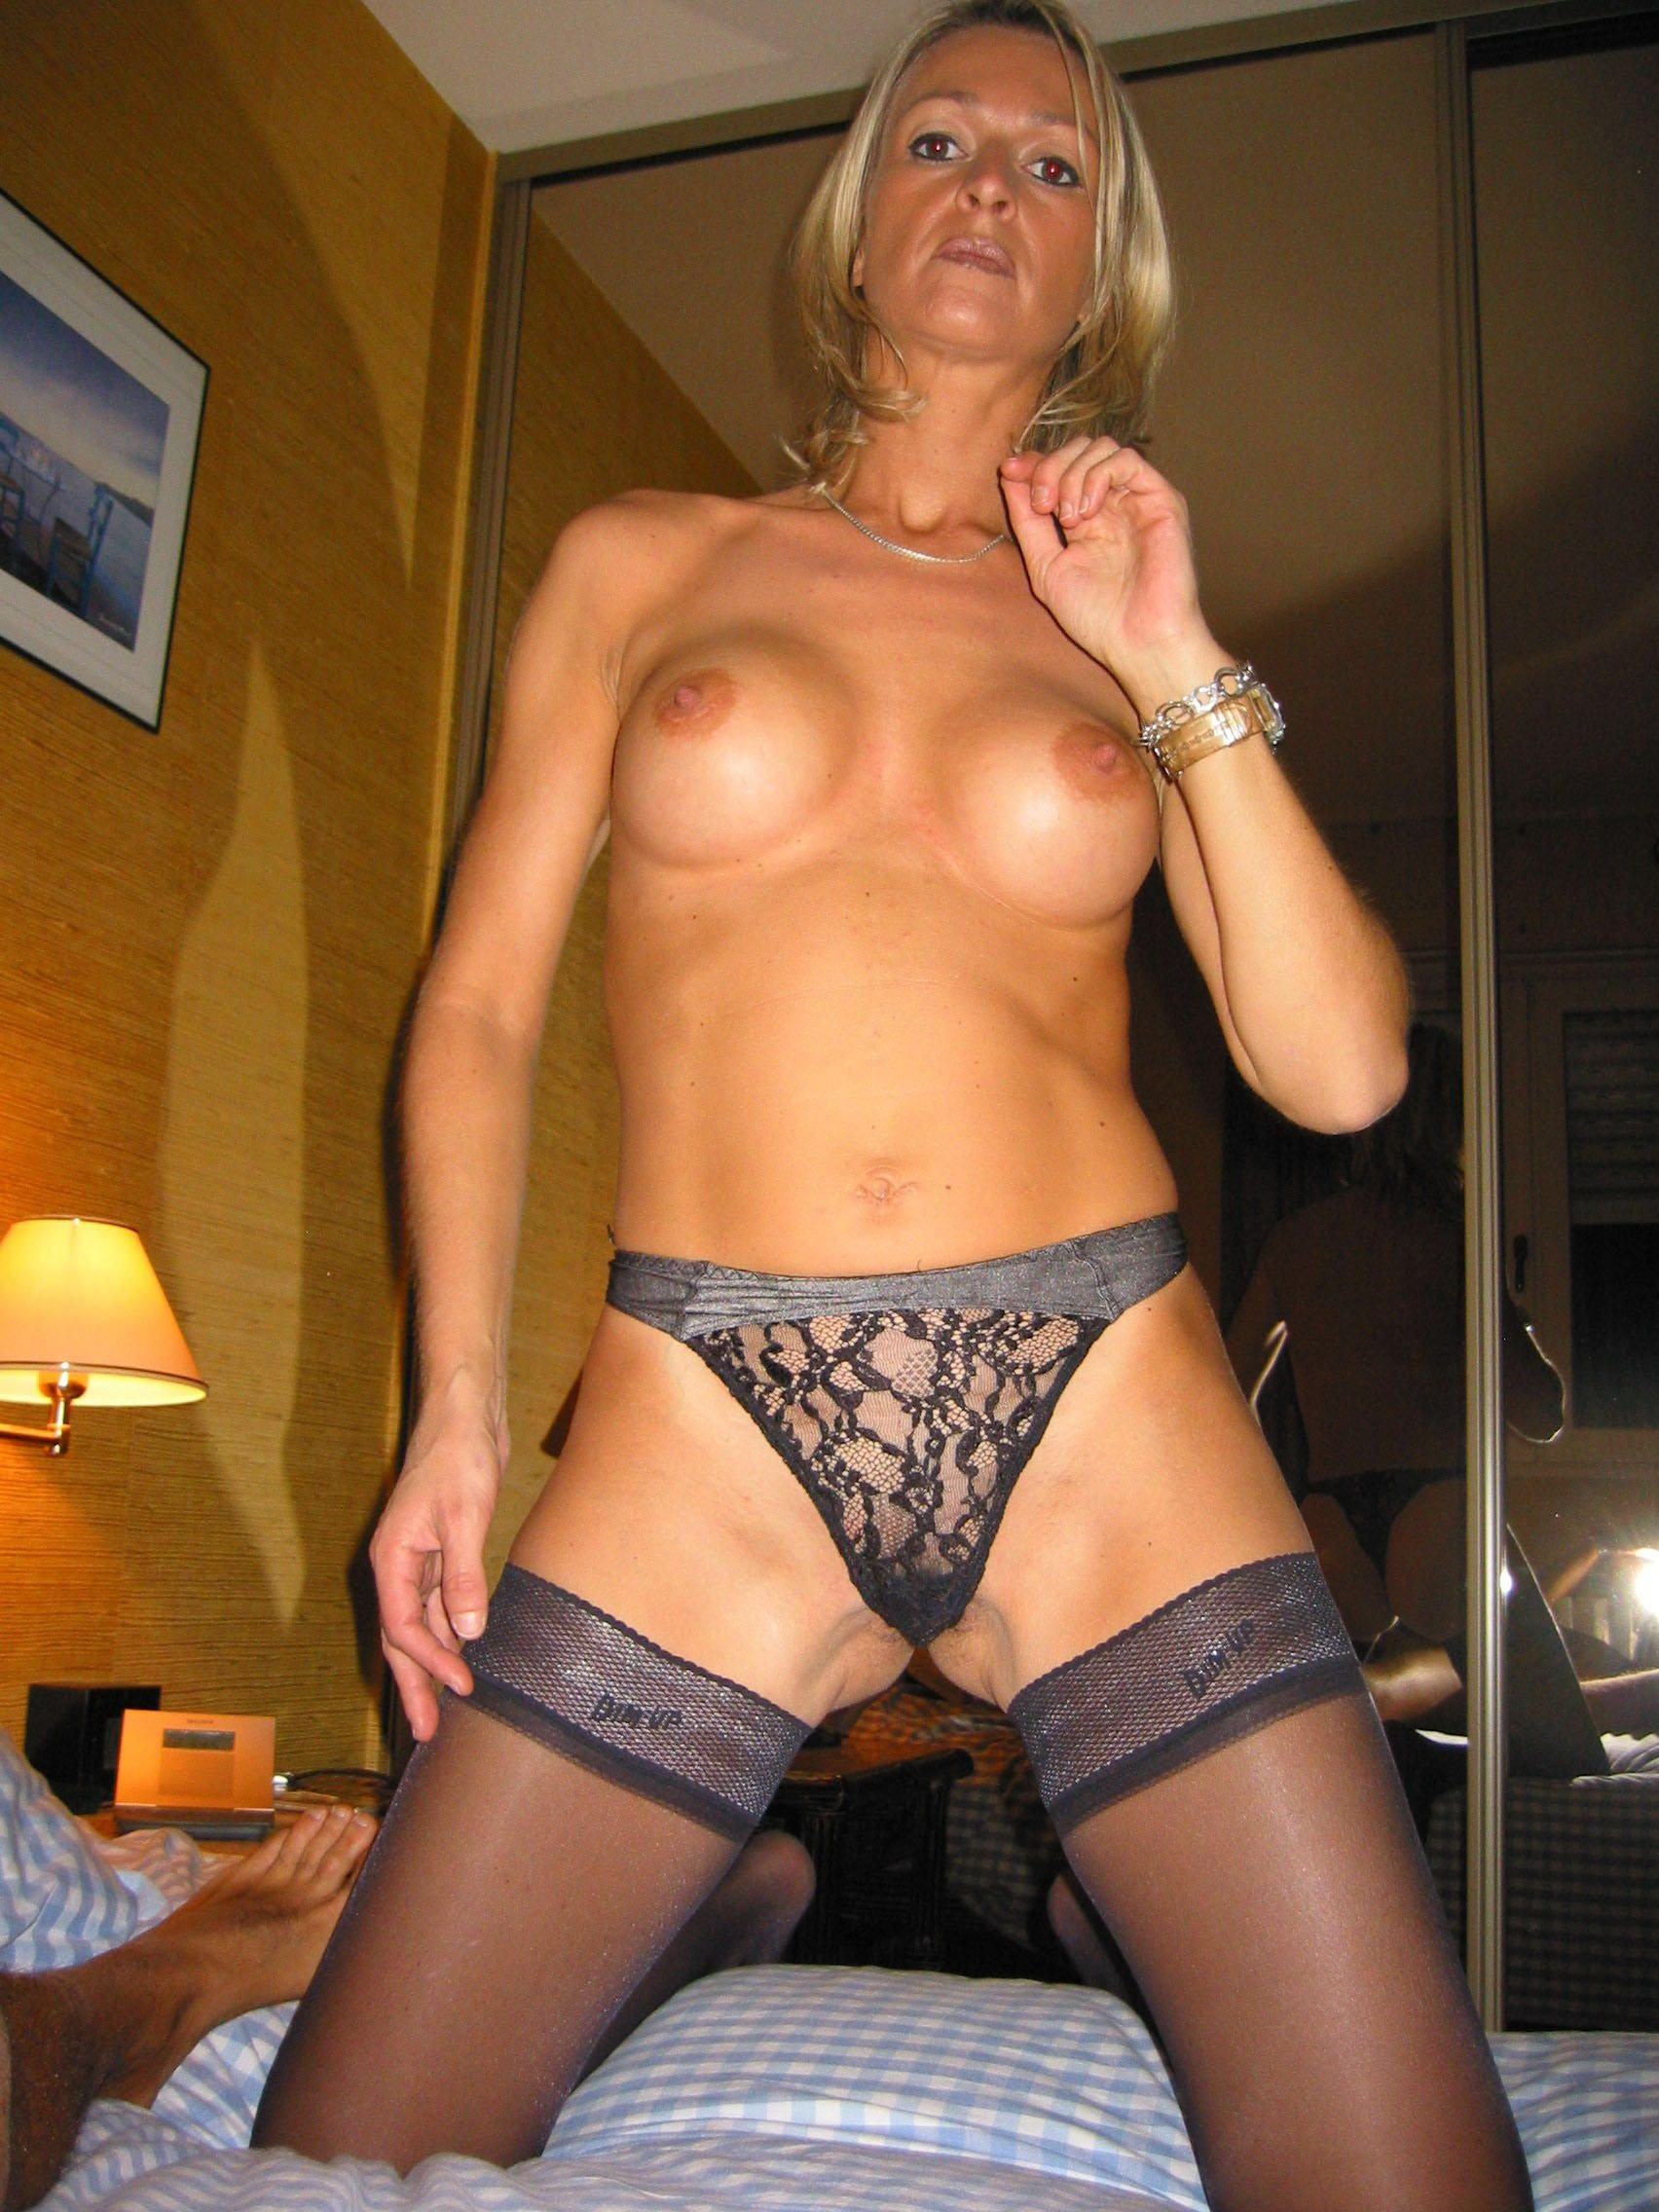 Free Housewife, Lingerie Pictures